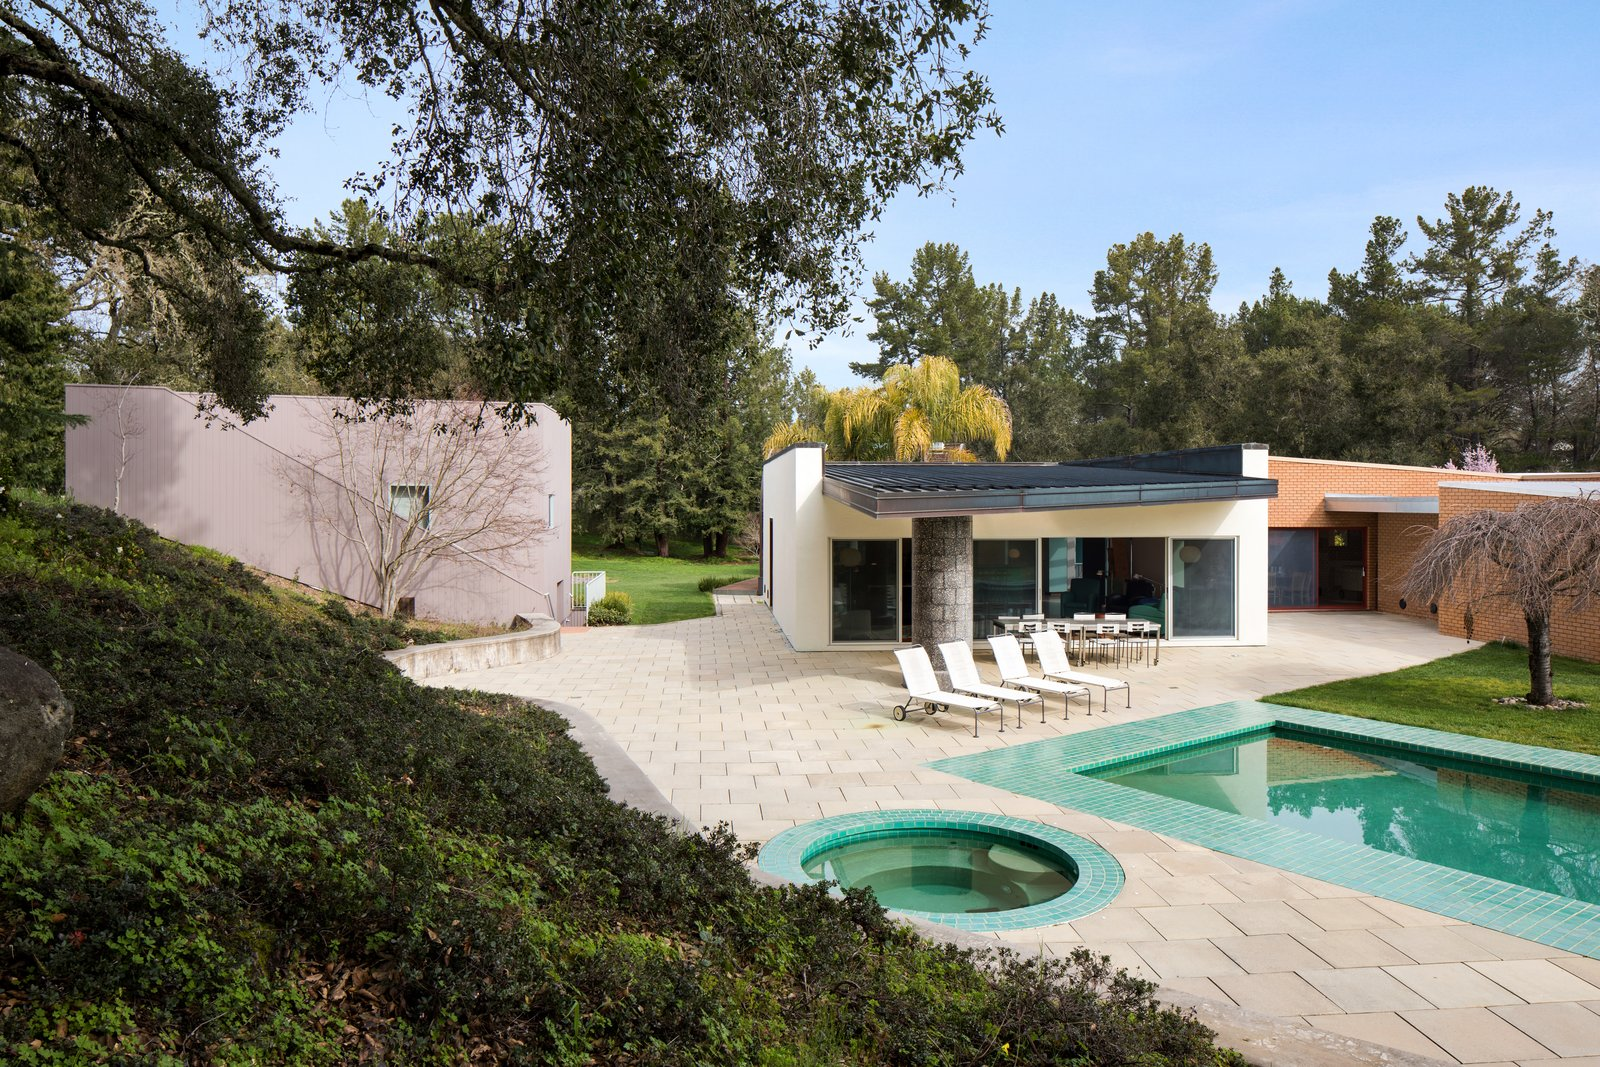 The pool and outdoor hot tub bounce green light off the roof hanging over the back terrace, creating a lush environment.  Photo 10 of 12 in IDEO Founder David Kelley Asks $15M For His Ettore Sottsass-Designed Masterpiece